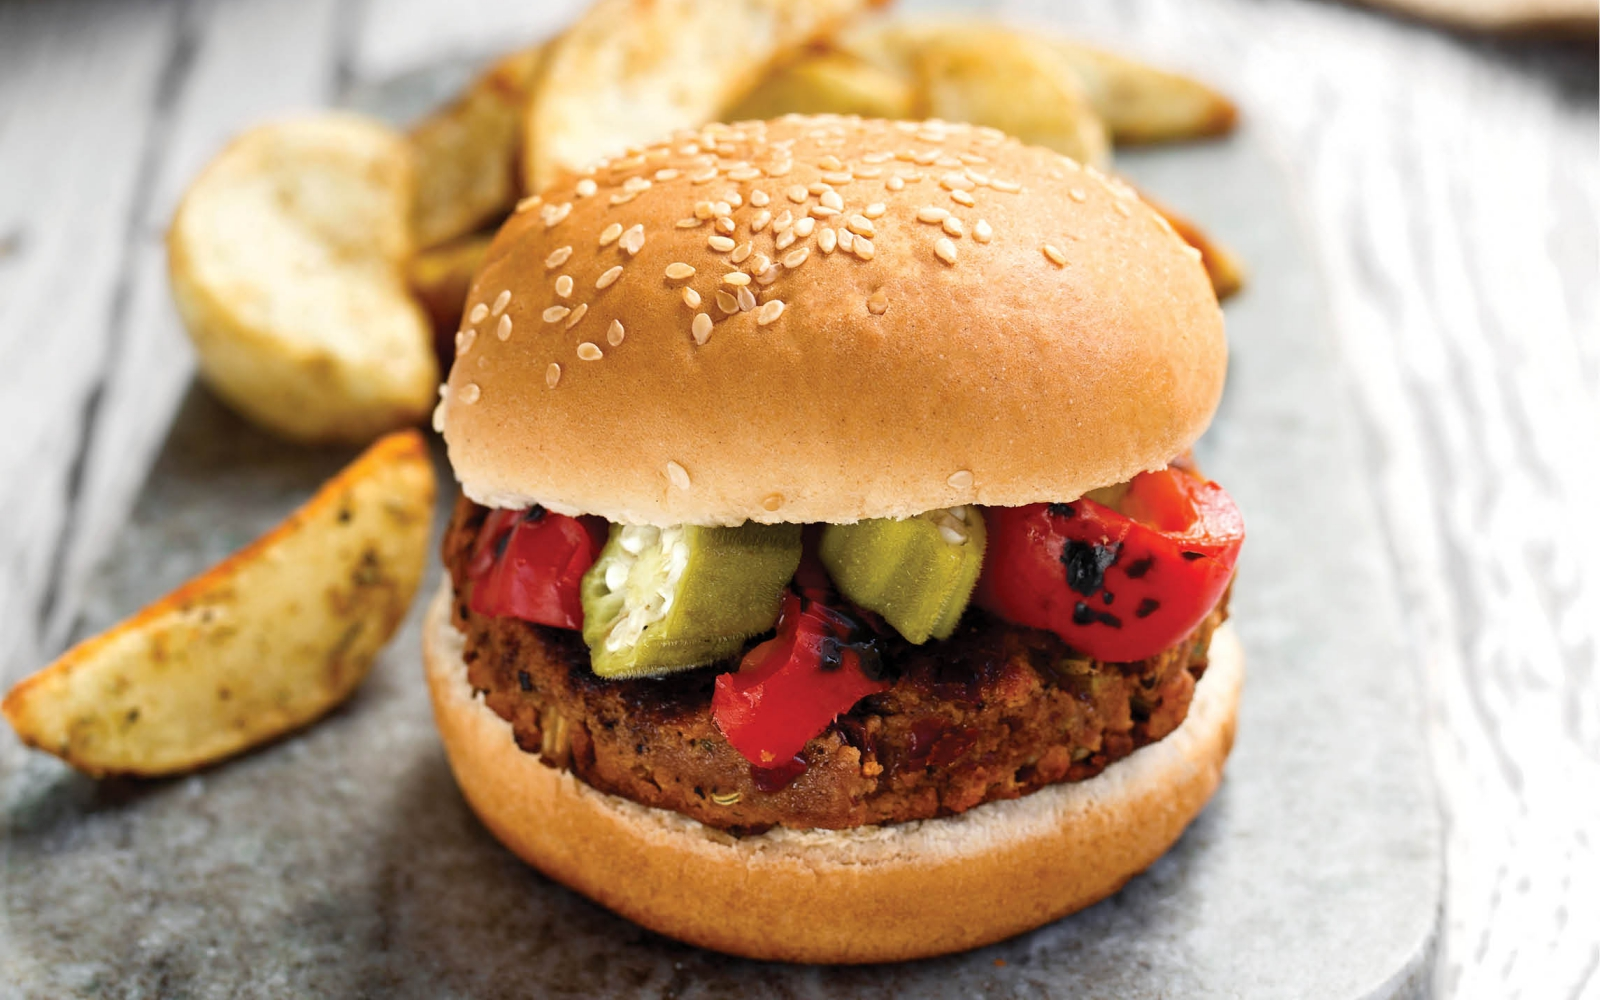 Vegan Sausage Gumbo Red Bean Burgers With Quick Pickled Okra